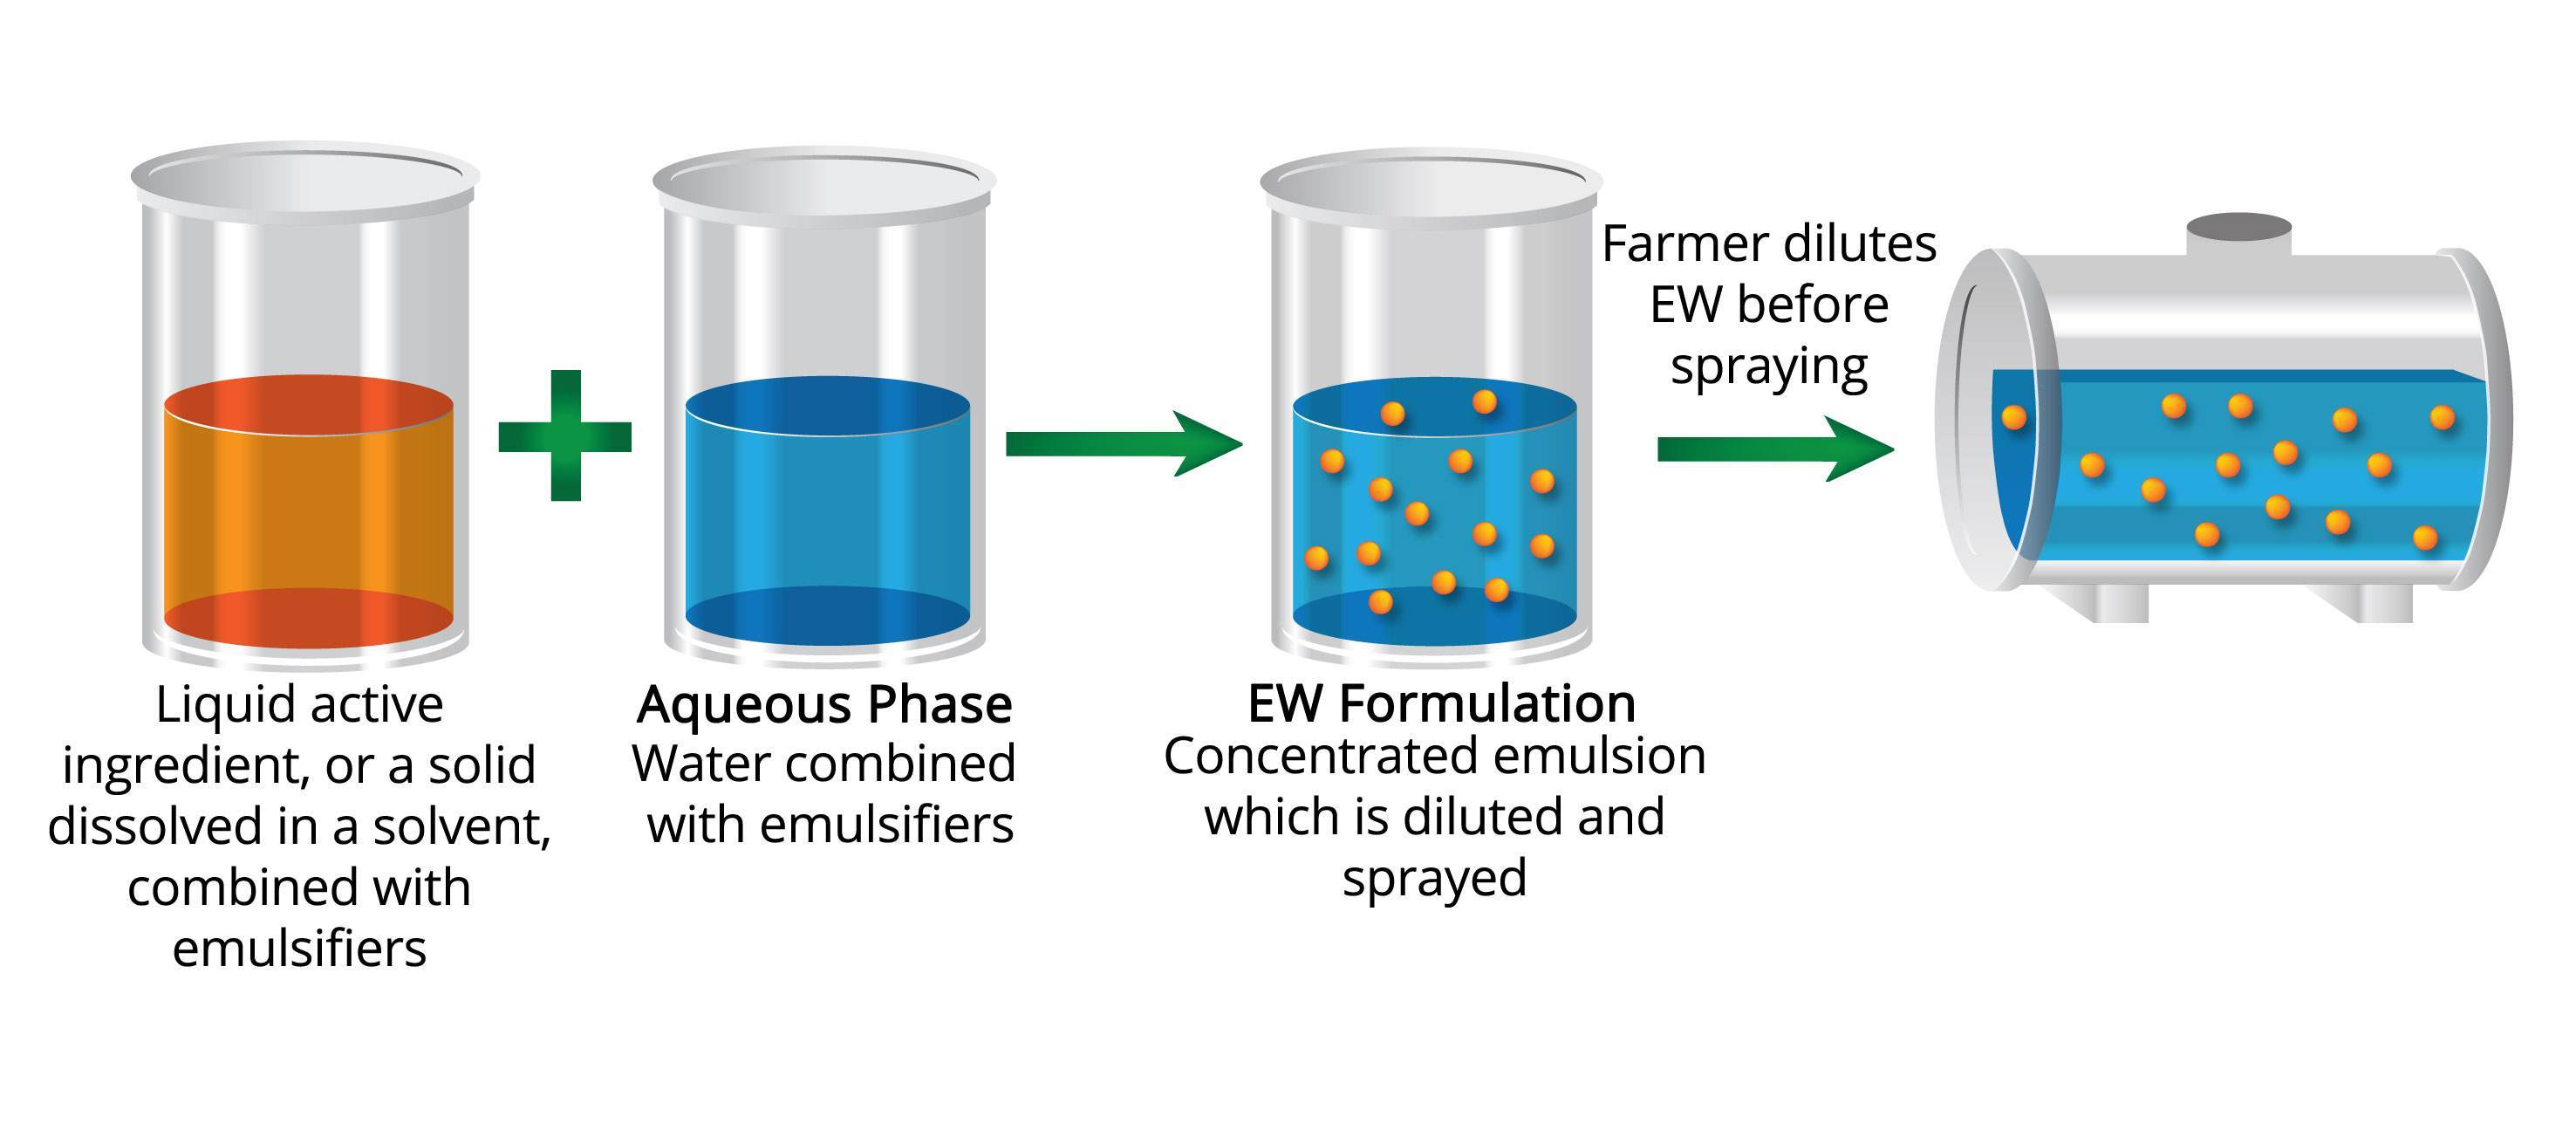 EW formulation diagram